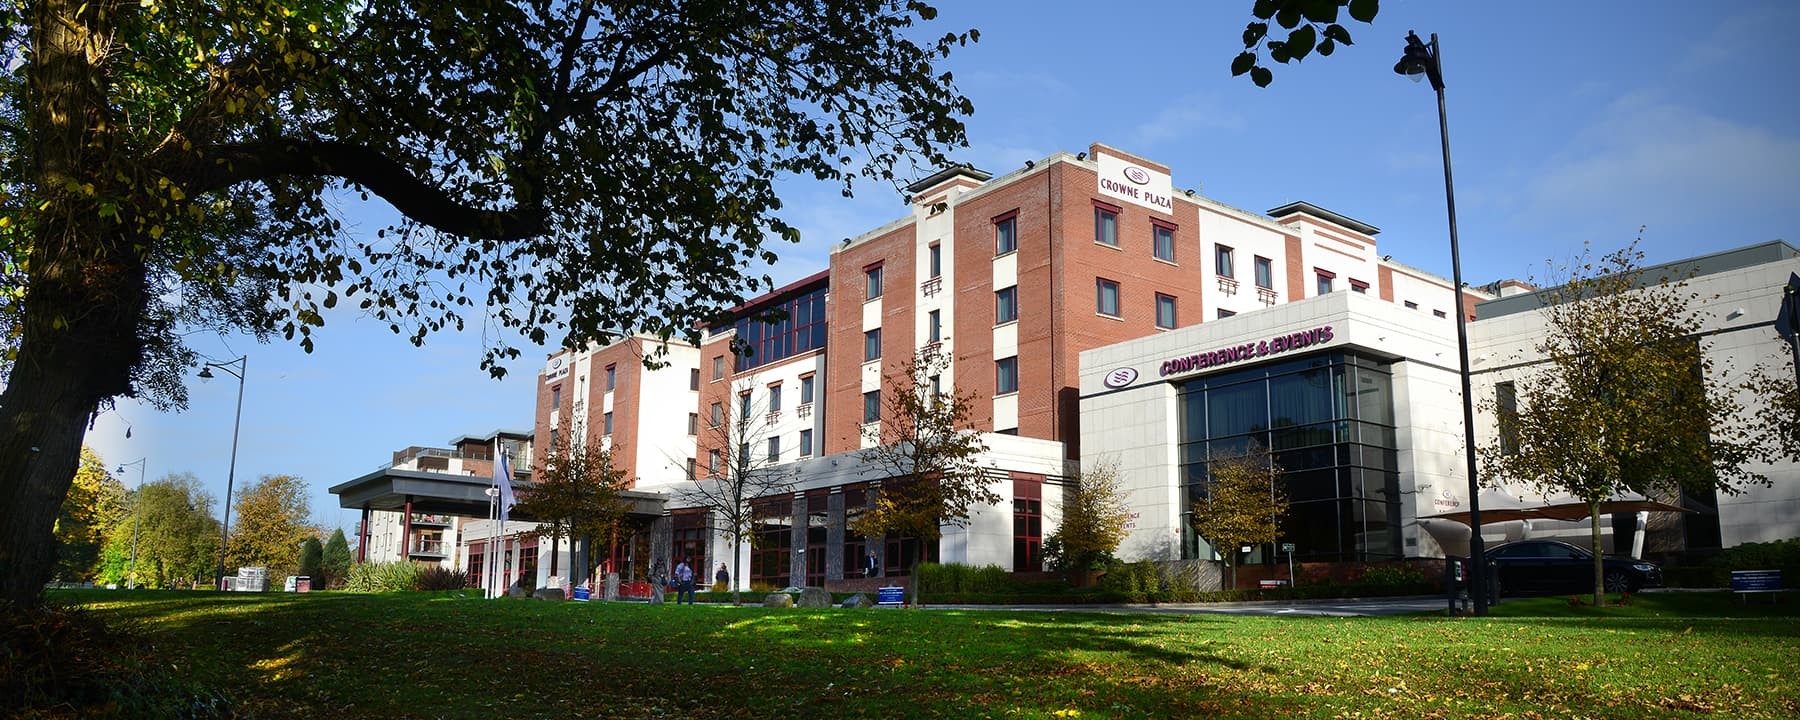 Crowne plaza dublin airport hotel